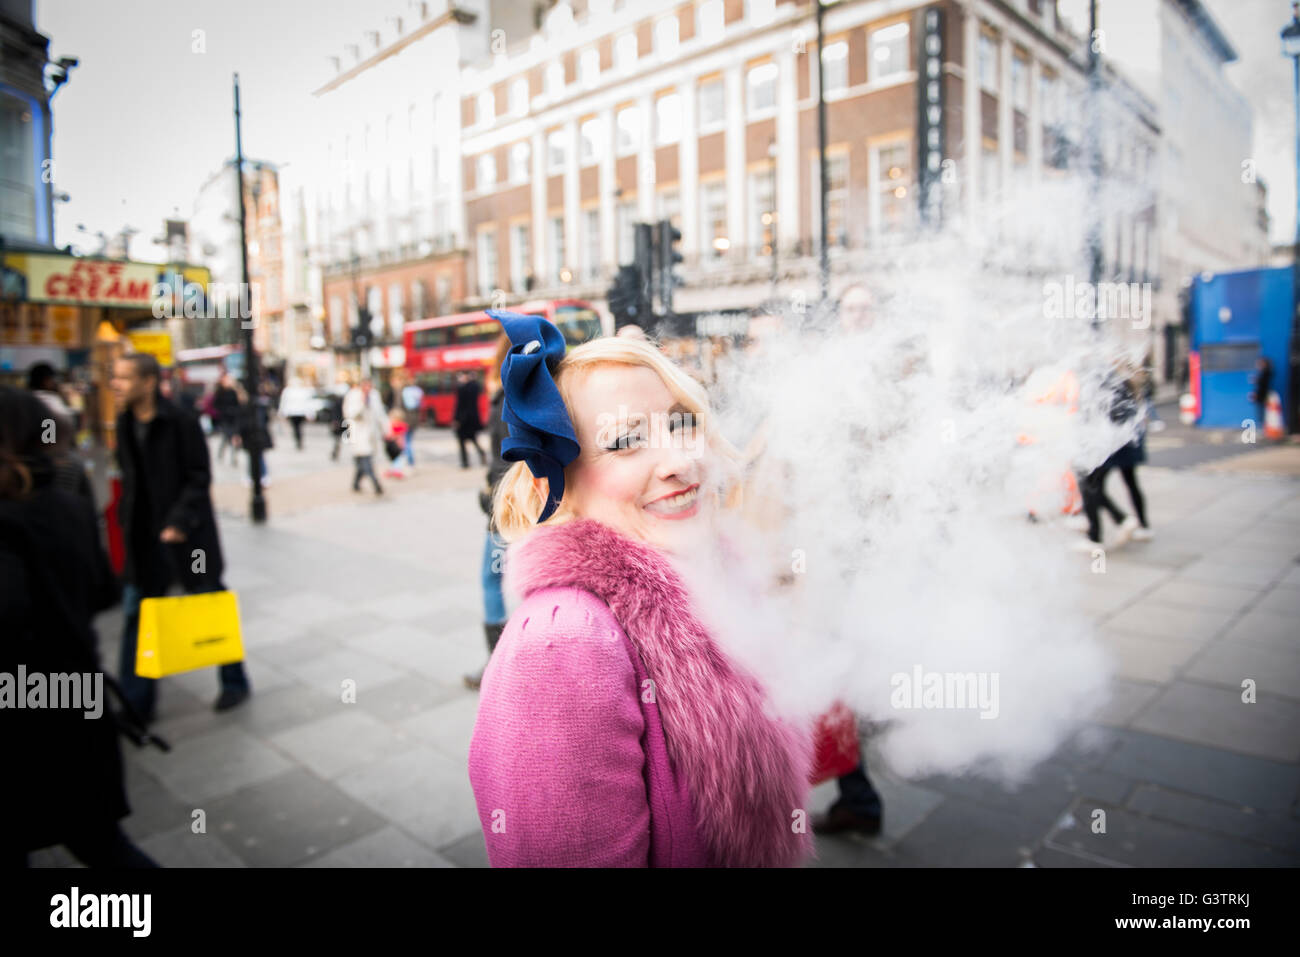 A stylish young woman dressed in 1930s style clothing smoking a cigarette on a street in London. - Stock Image